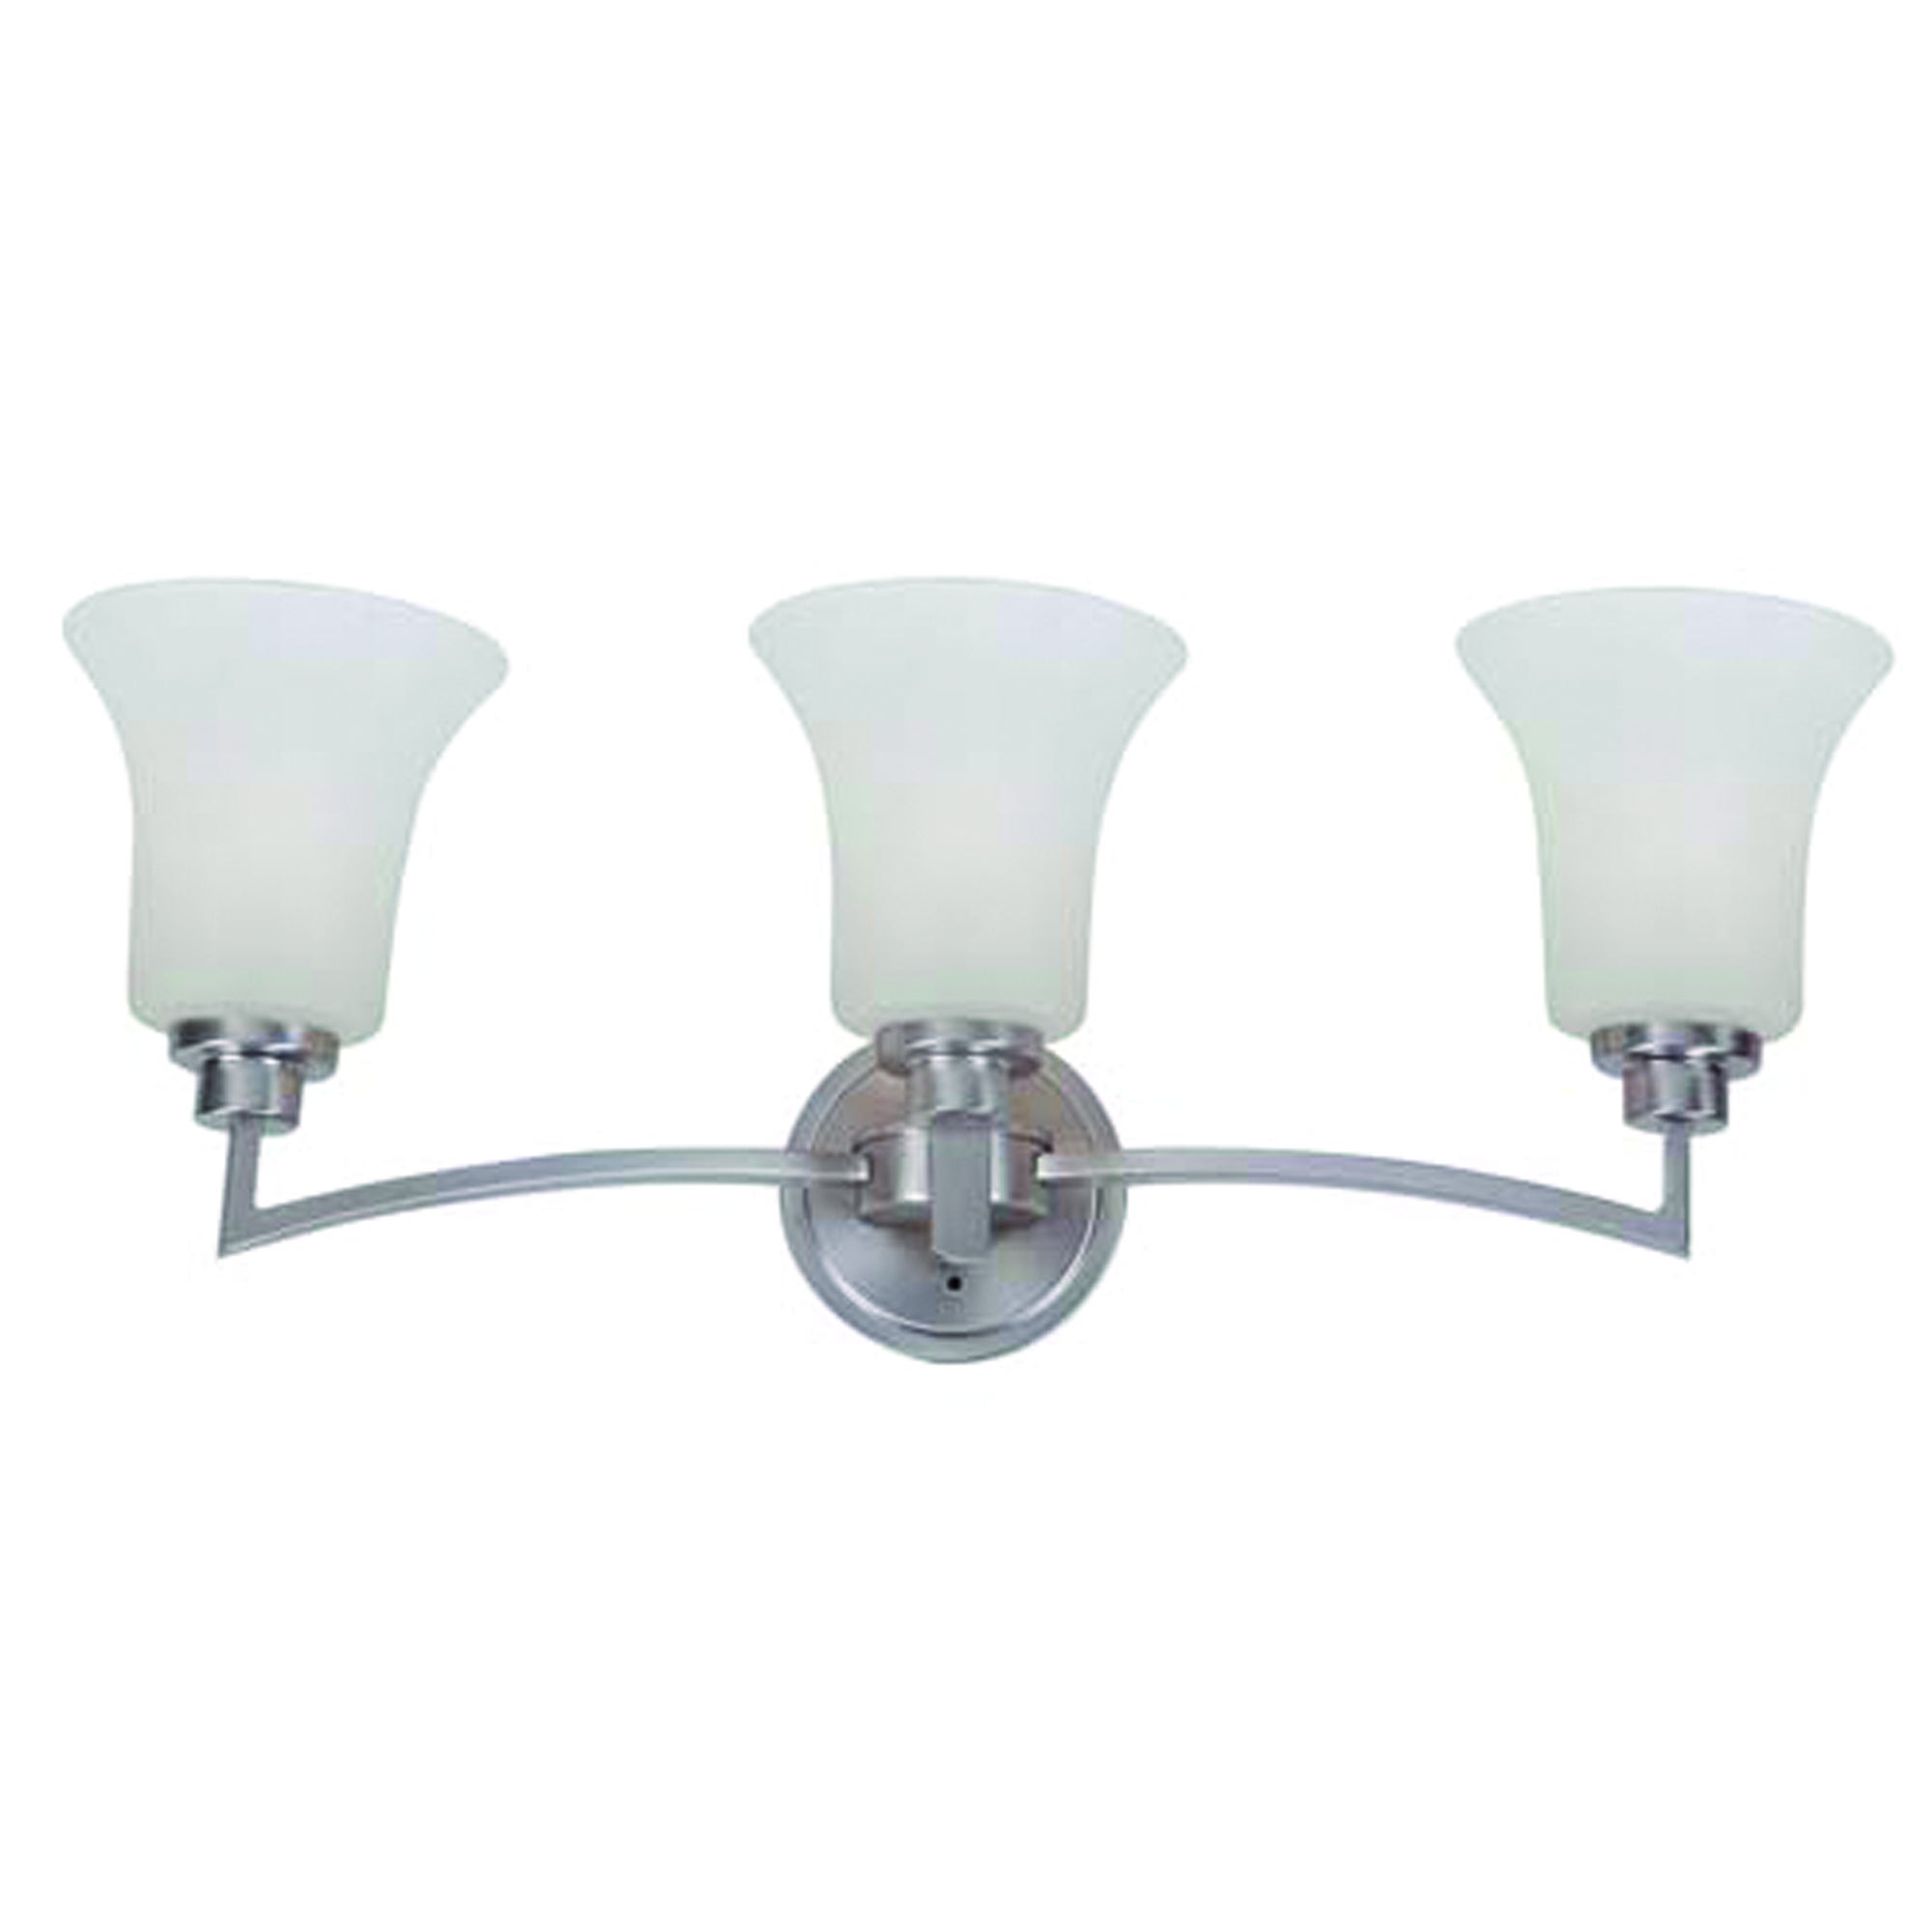 Y-Decor 'Dallin' Satin Nickel Steel 3-light Bathroom Vani...